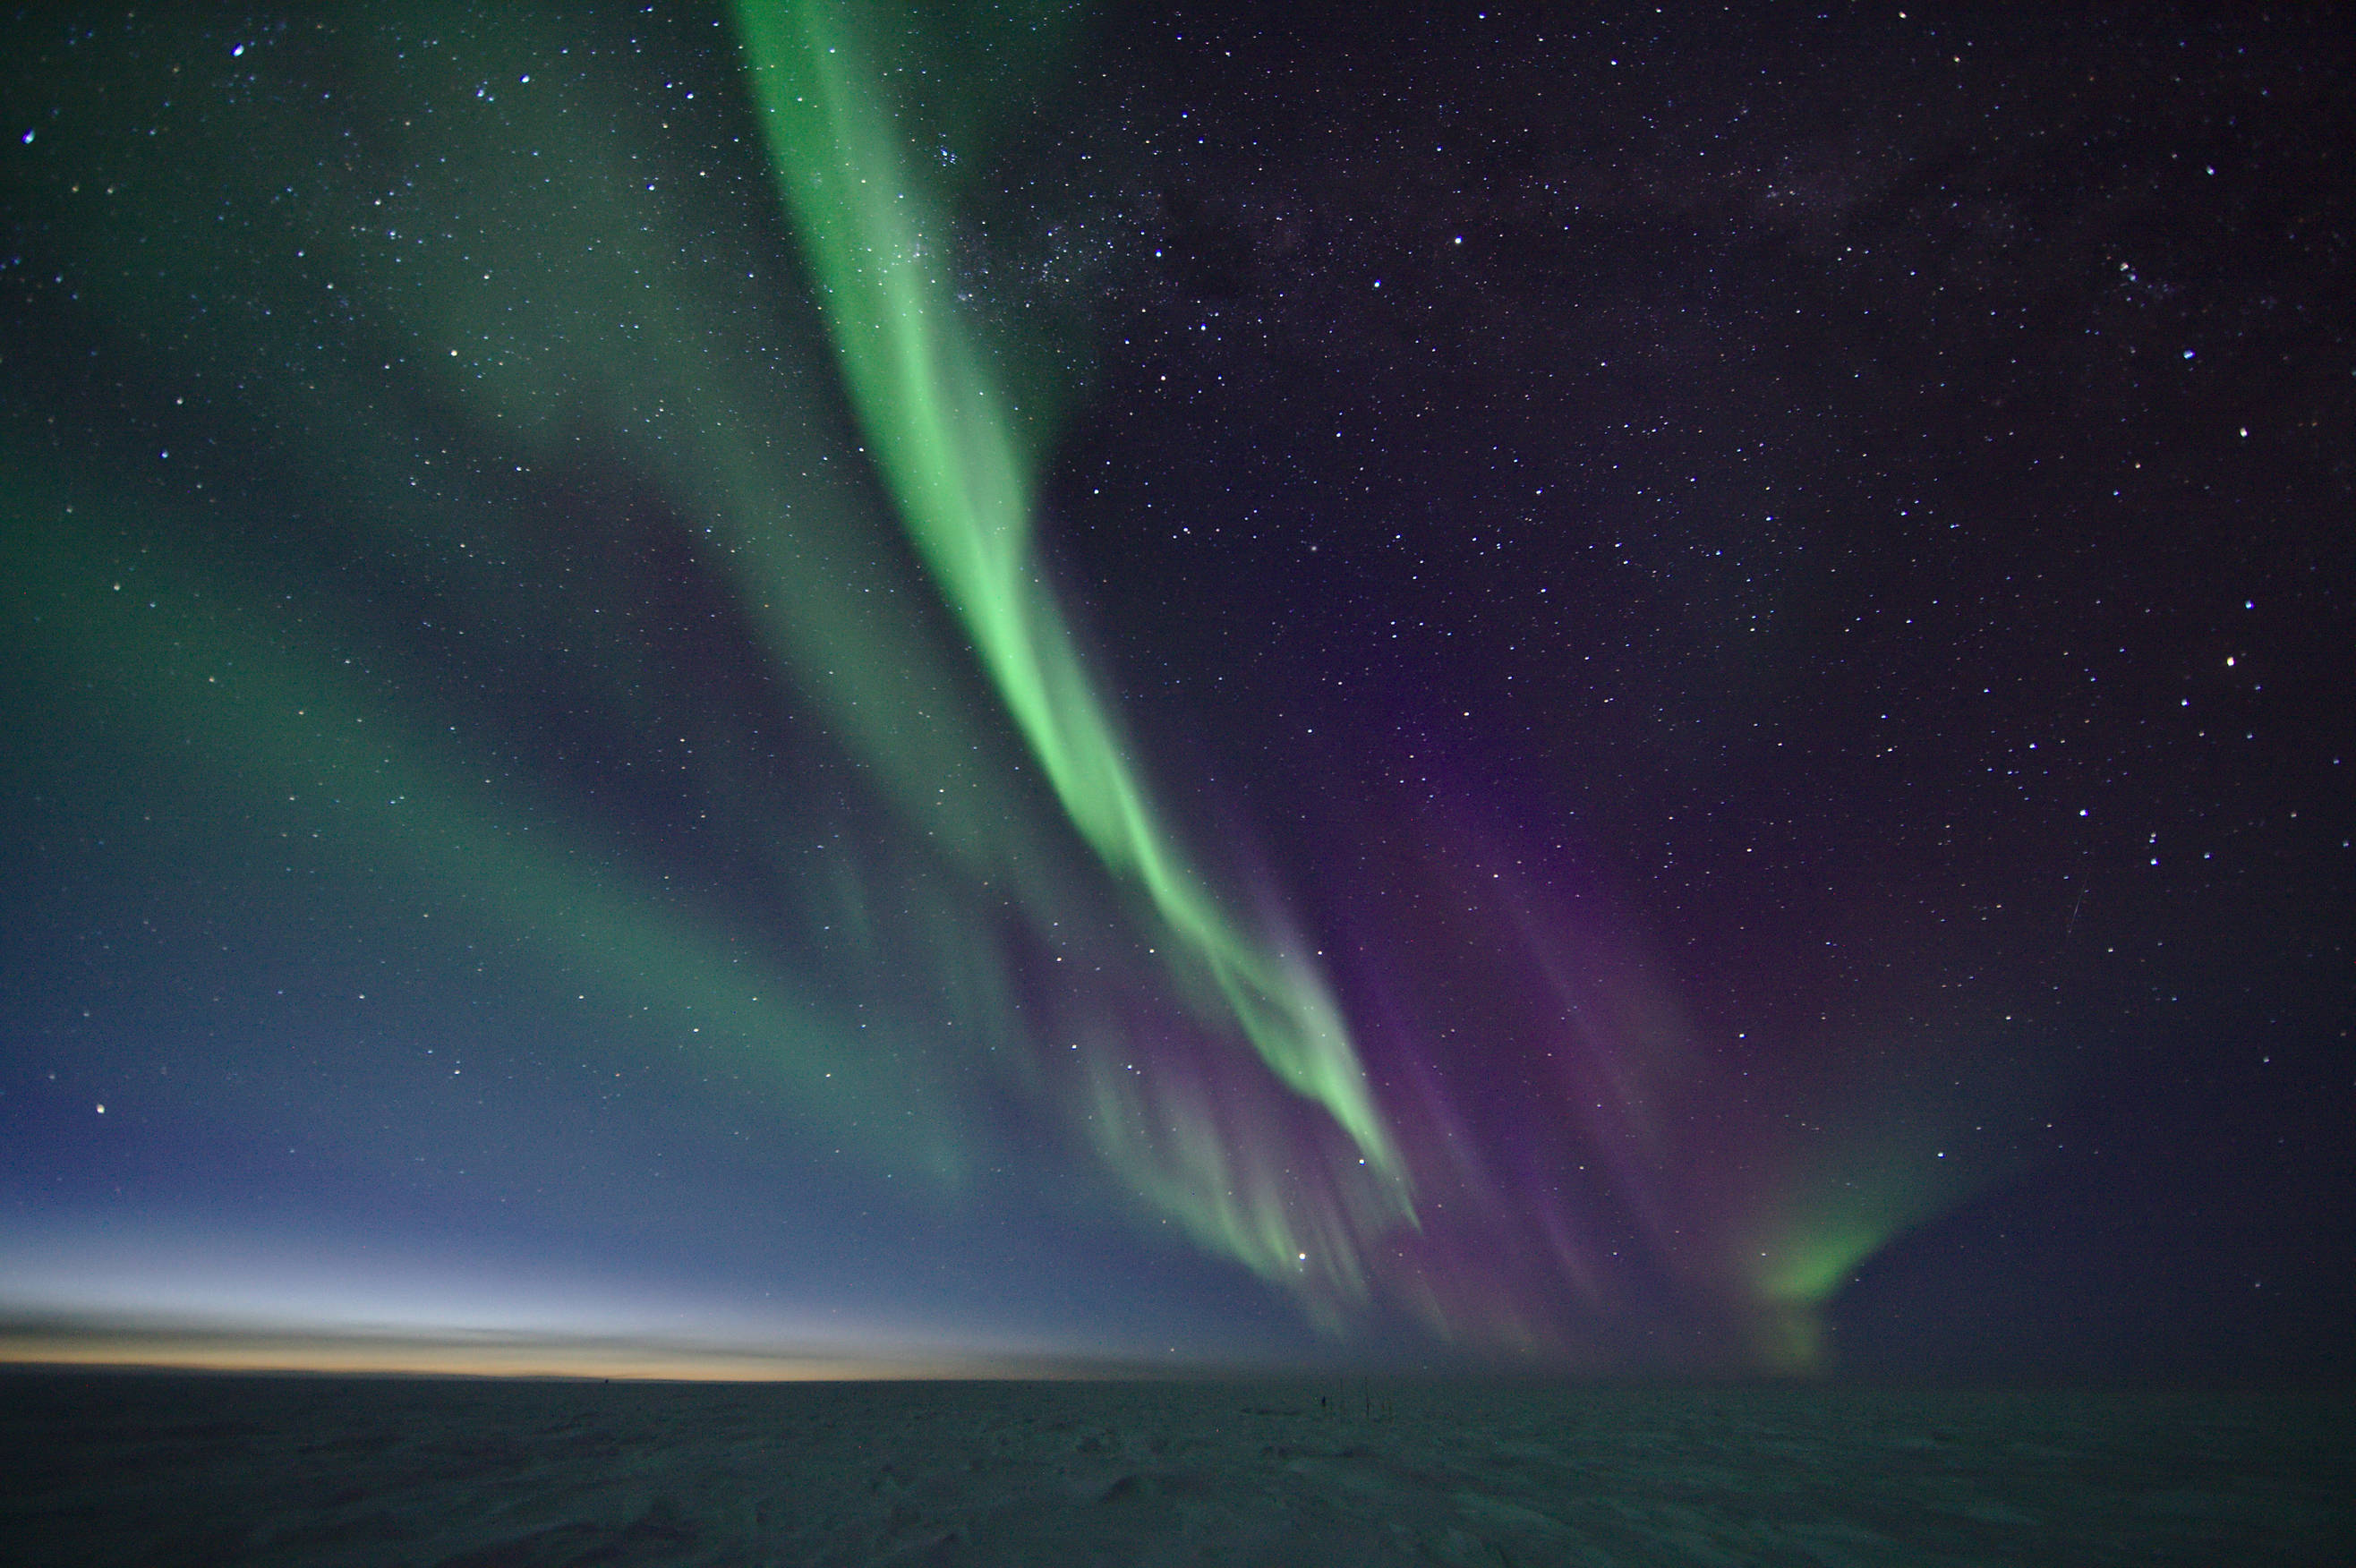 View outside - the frozen landscape of the south pole illuminated by beautiful auroras and a tiny glimpse of sunlight